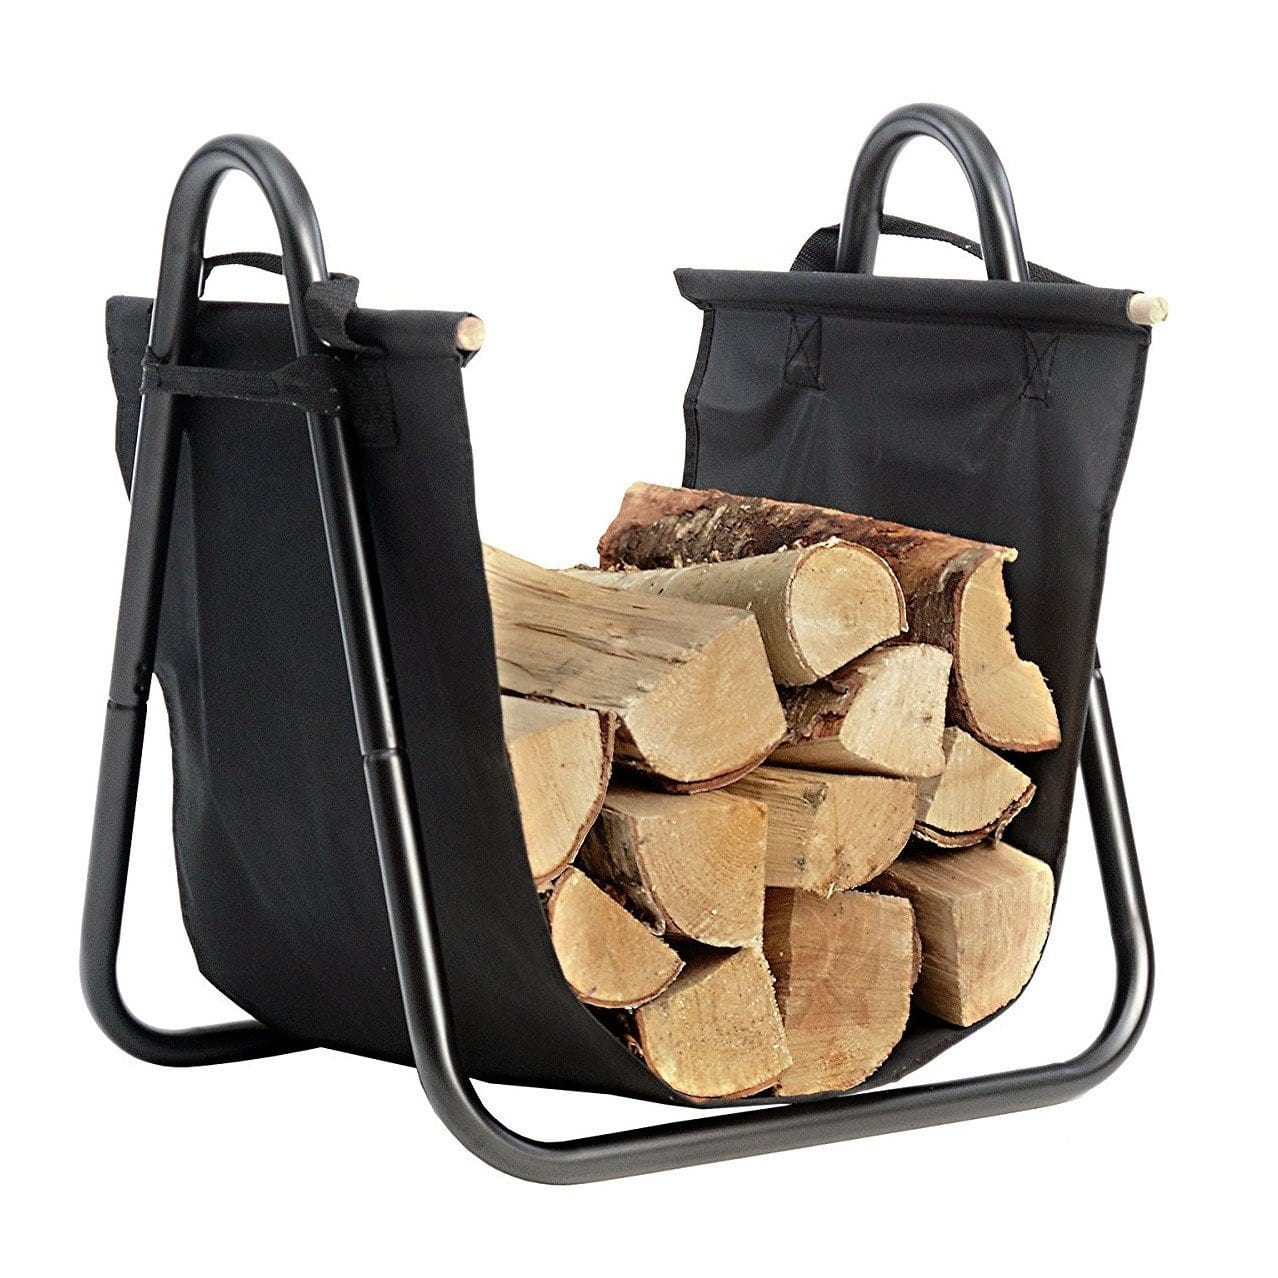 Fireplace Log Holder with Canvas Tote Carrier $12.99 (F/S Prime)